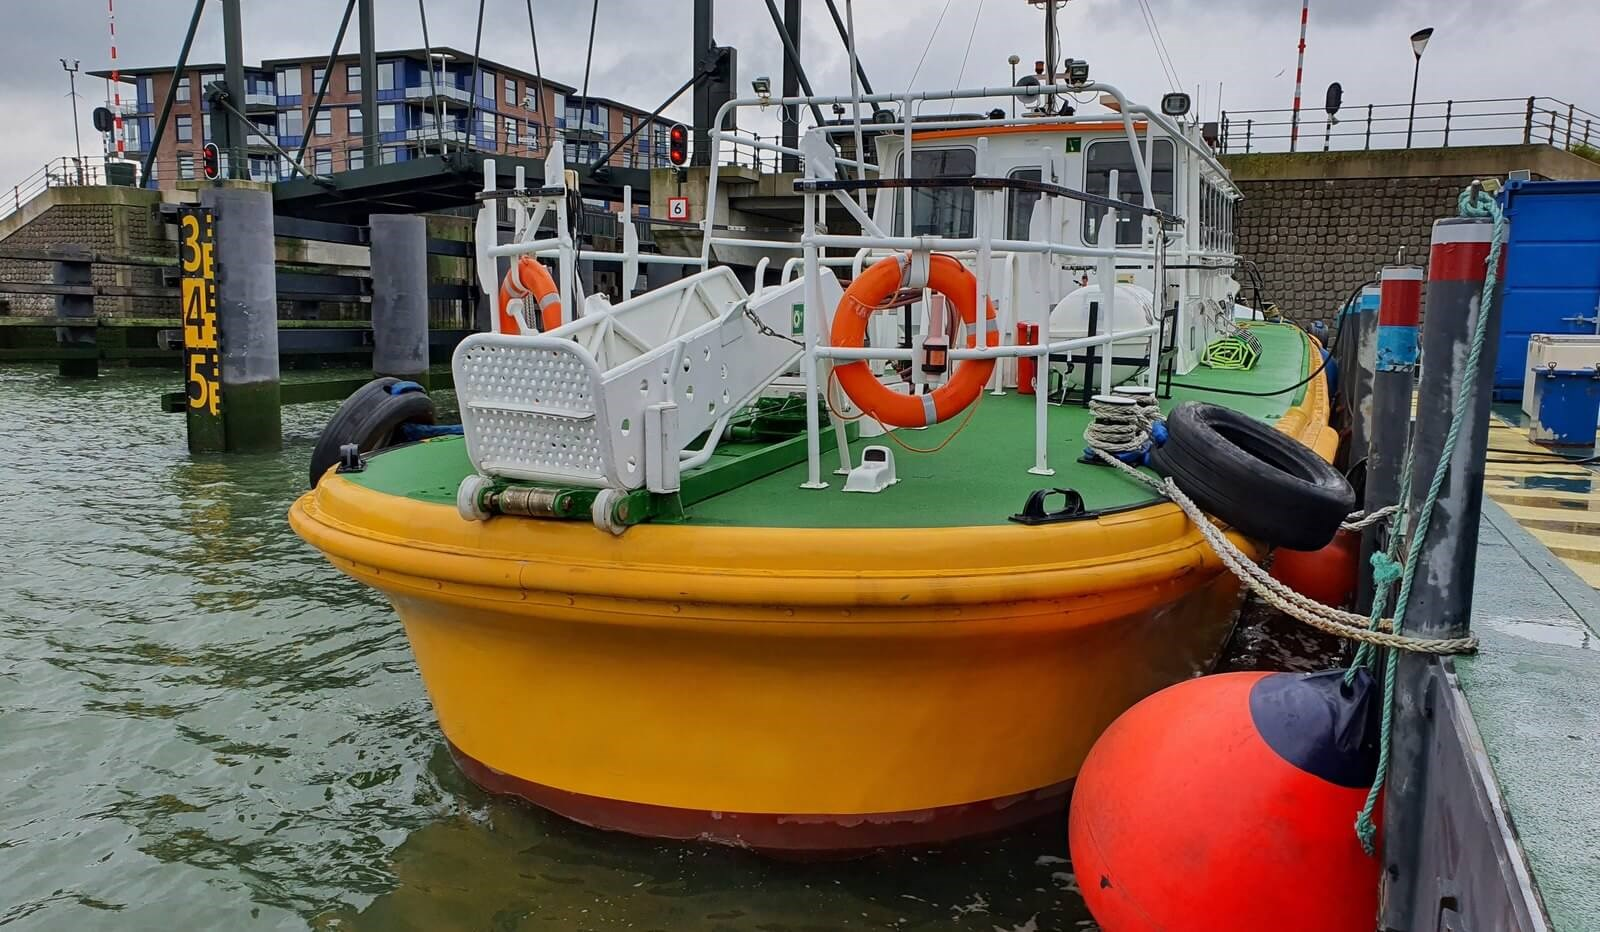 fast pilot boat for crew transfer 07560 (17)